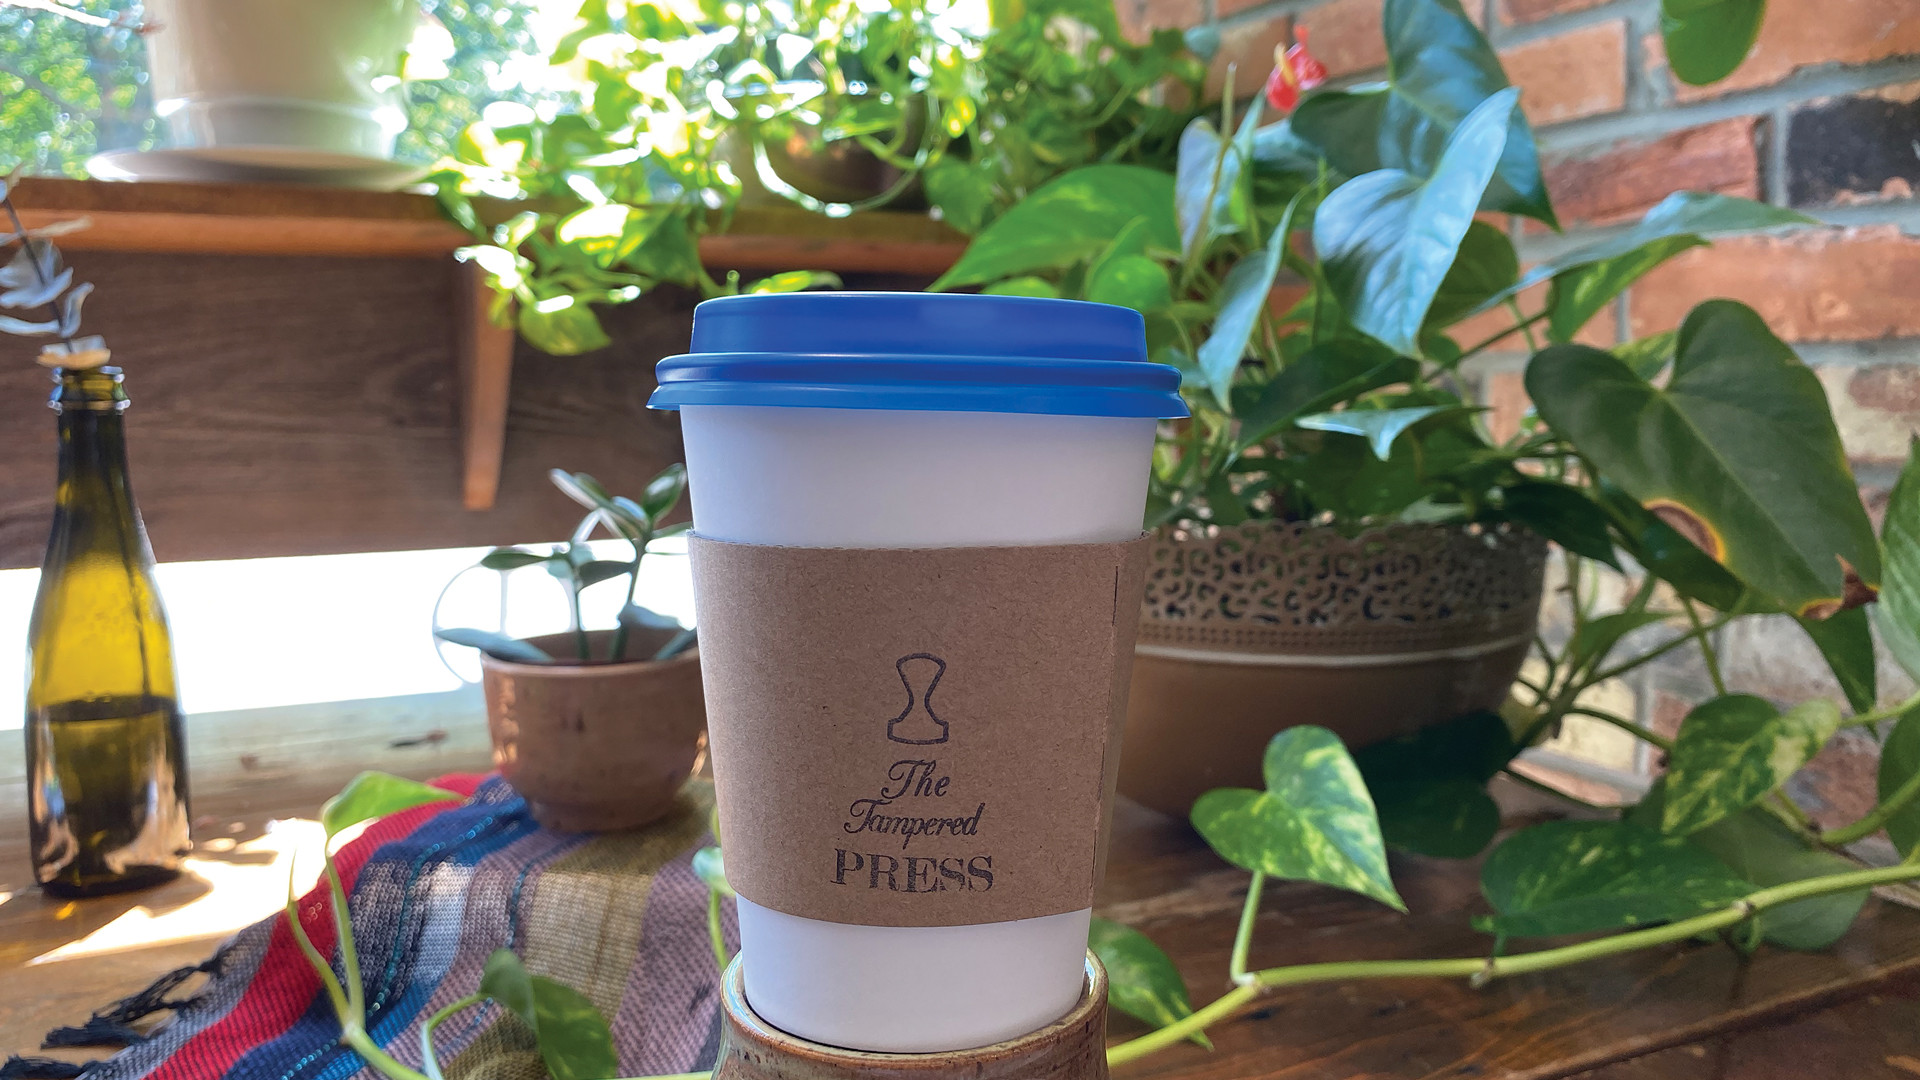 Trinity Bellwoods neighbourhood guide   A coffee cup inside The Tampered Press